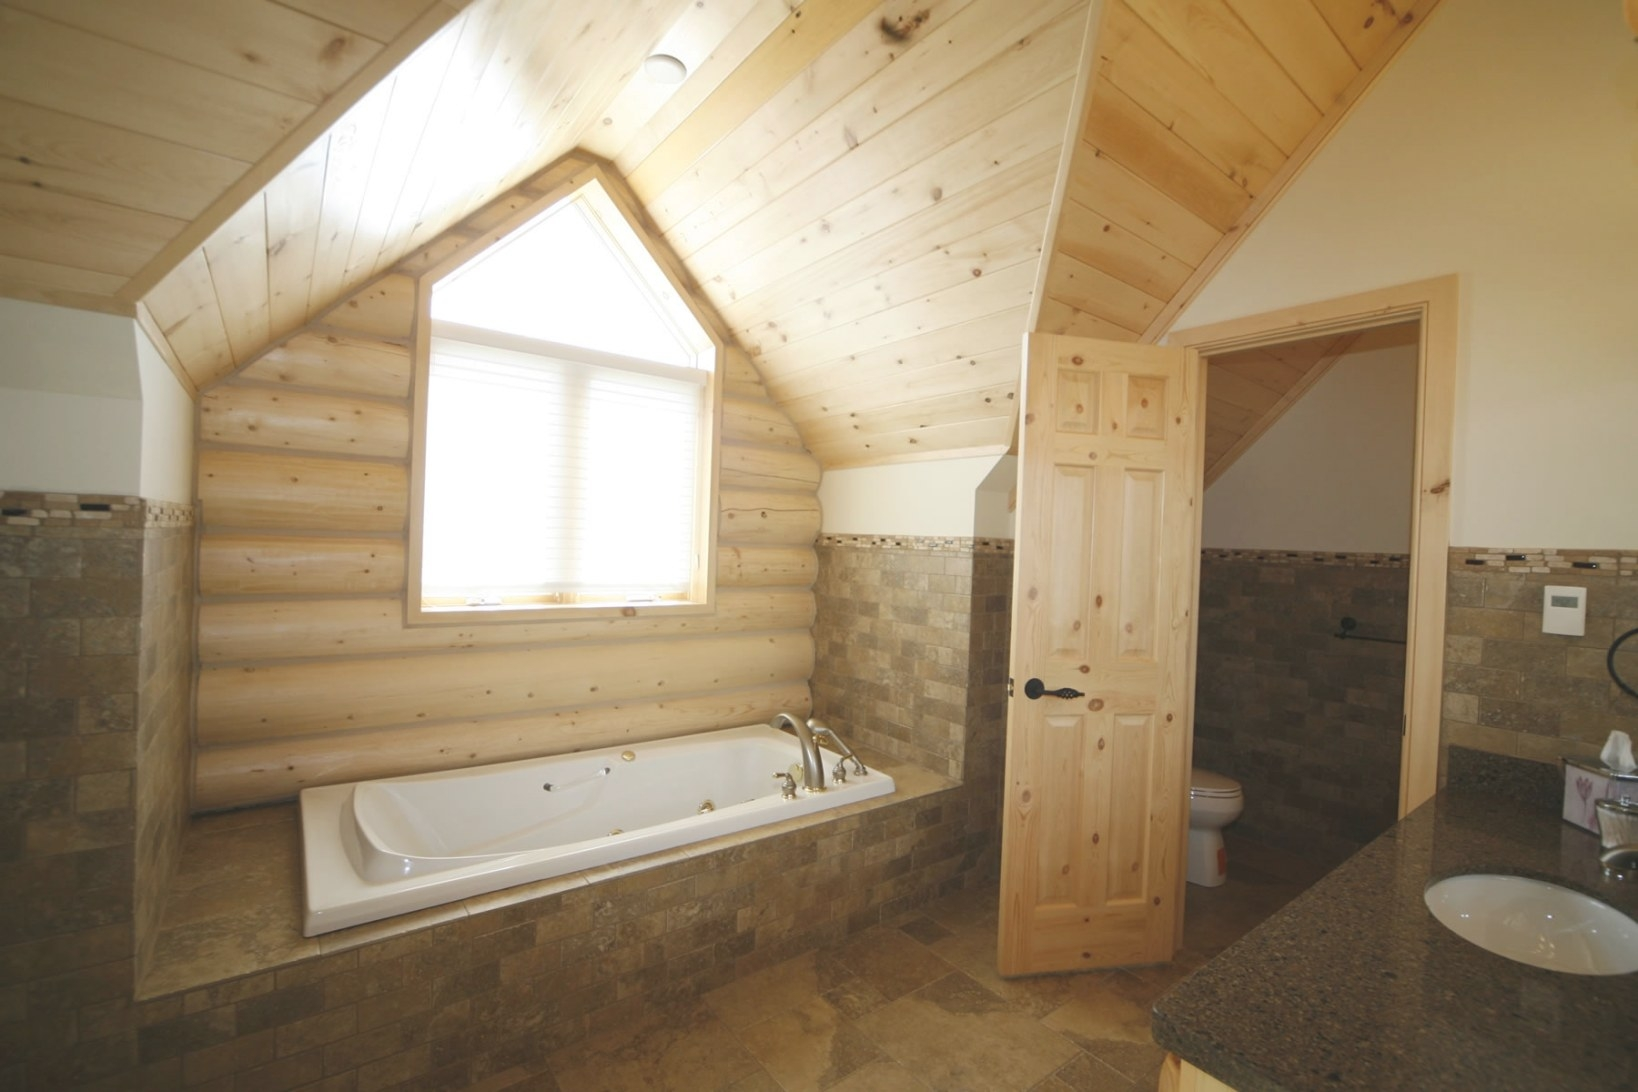 Whisper Creek Log Homes | Oke Woodsmith Building Systems Inc. with Whisper Creek Log Homes